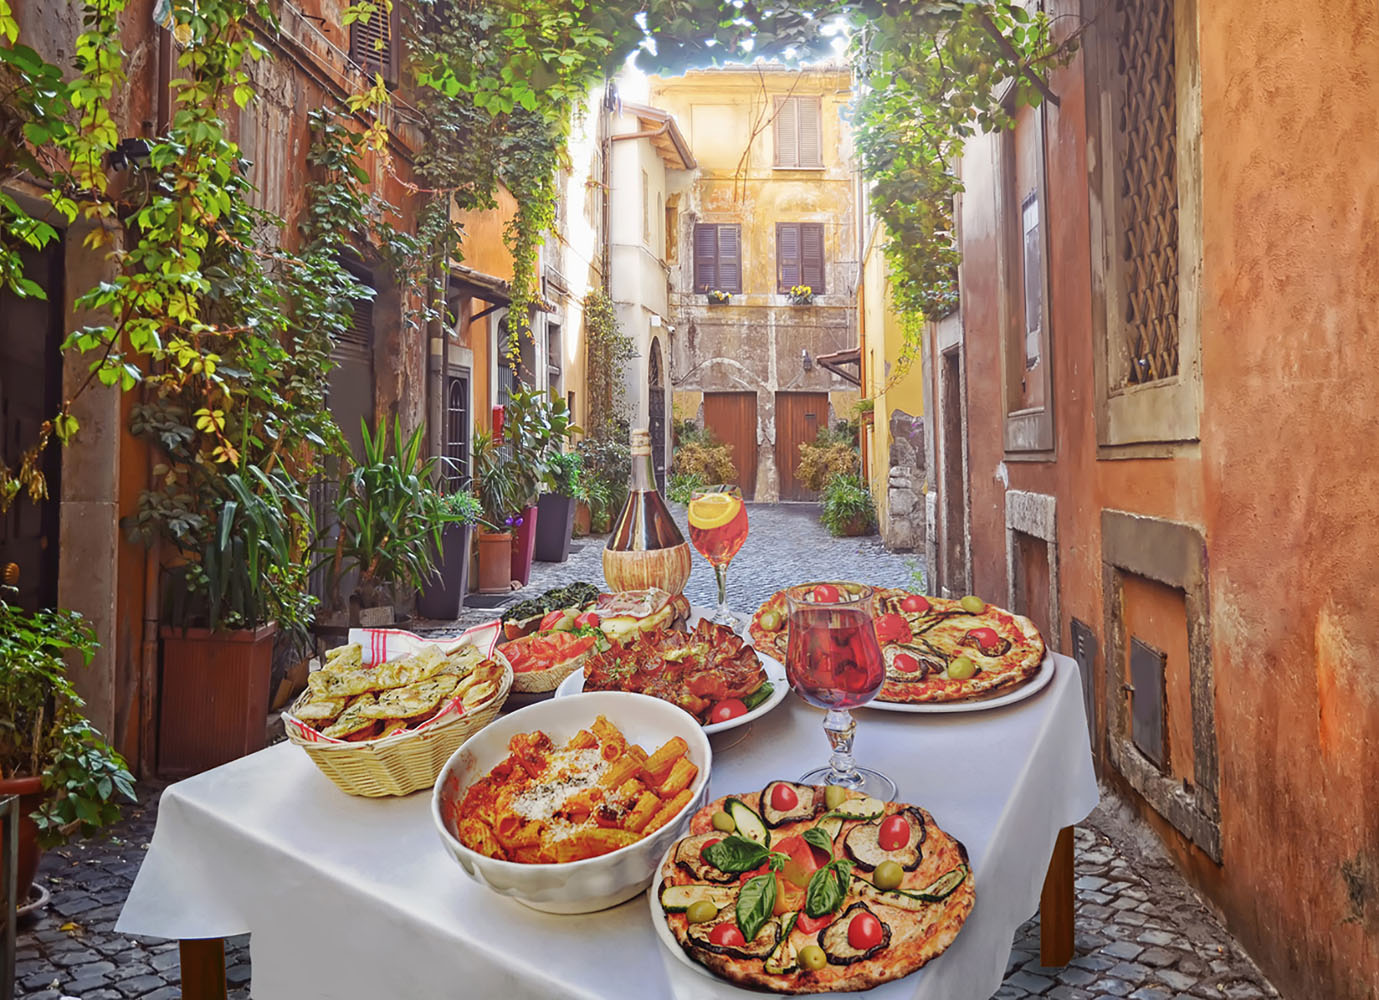 A Regional Sampling of Italian Cuisine